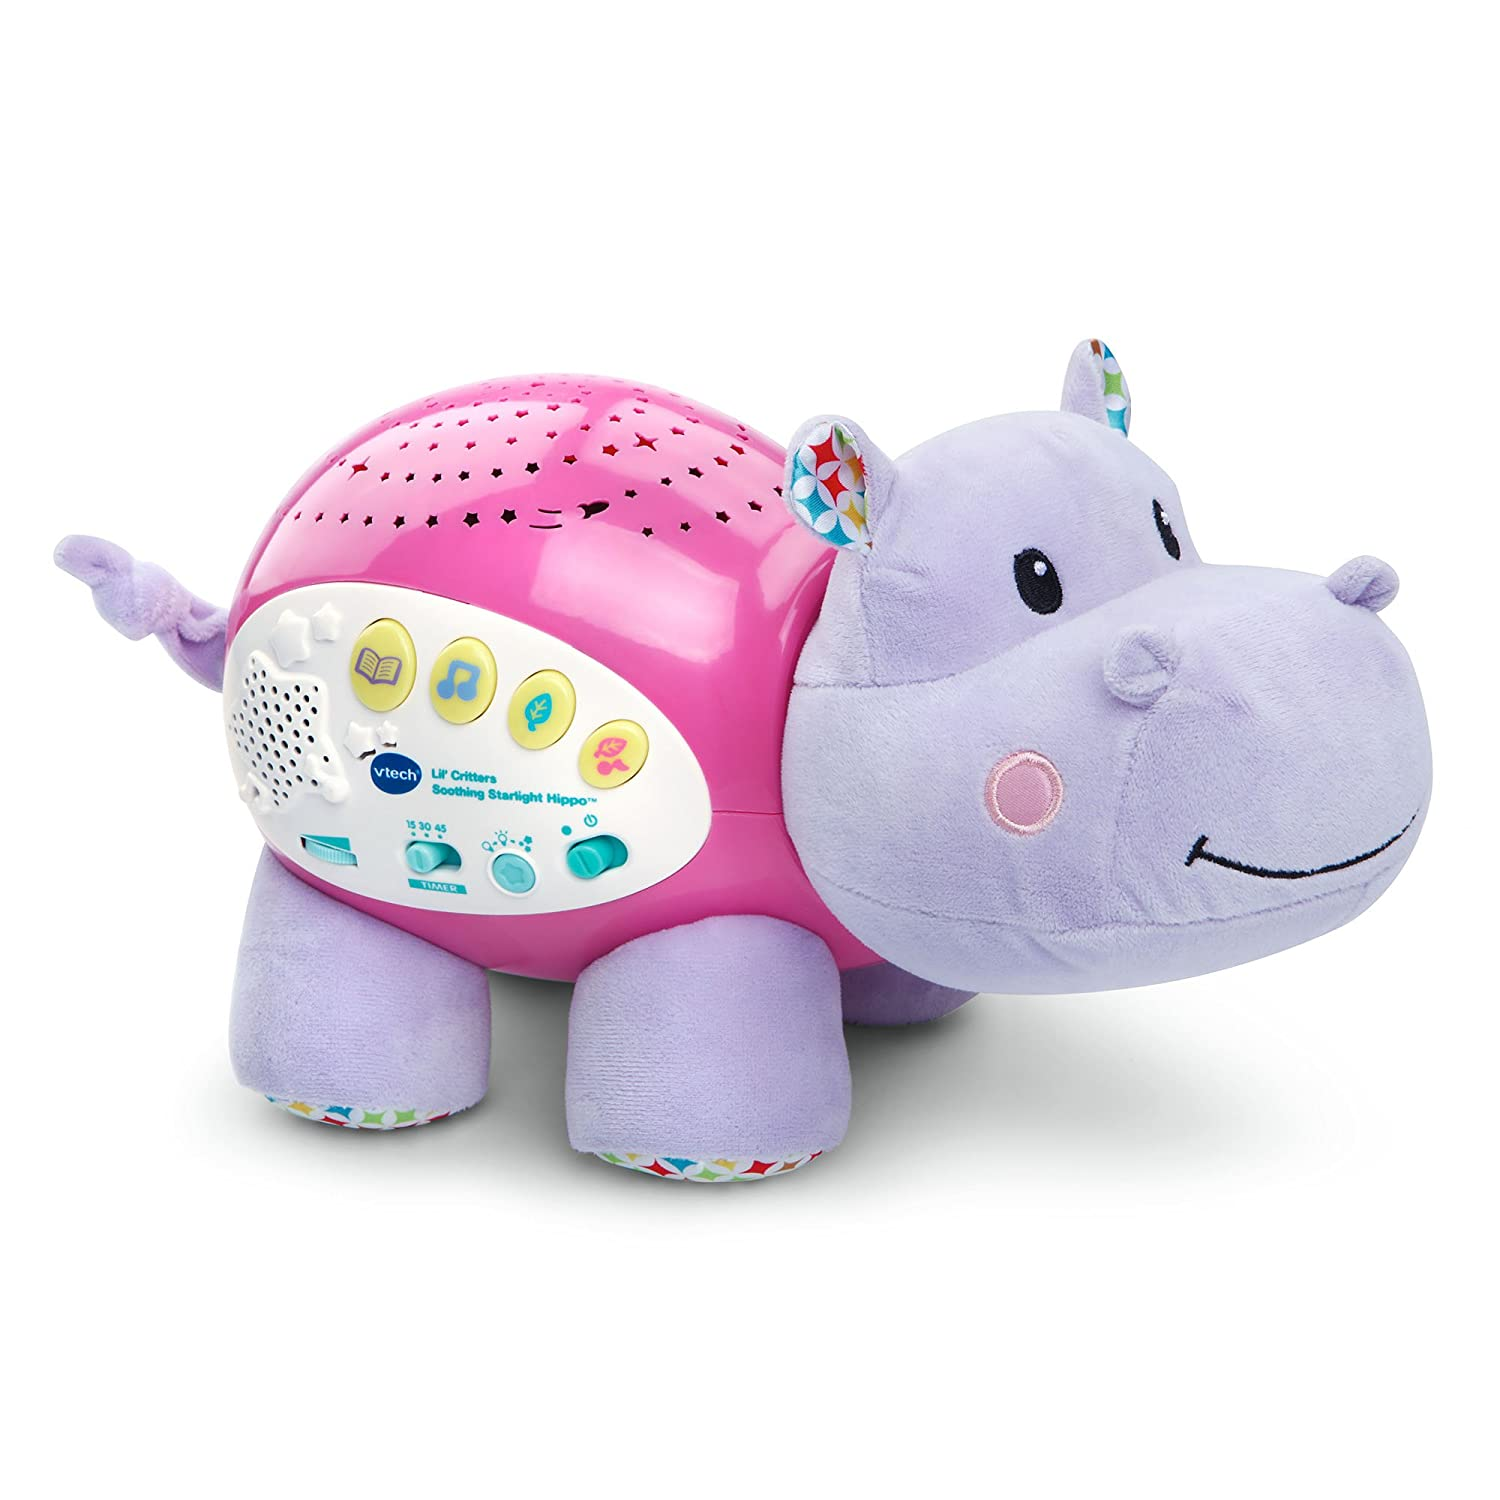 VTech Baby Lil' Critters Soothing Starlight Hippo, Pink (Amazon Exclusive) baby sleep Baby sleep: Problems, Solutions, Tips and Tricks 71c0HchCLdL